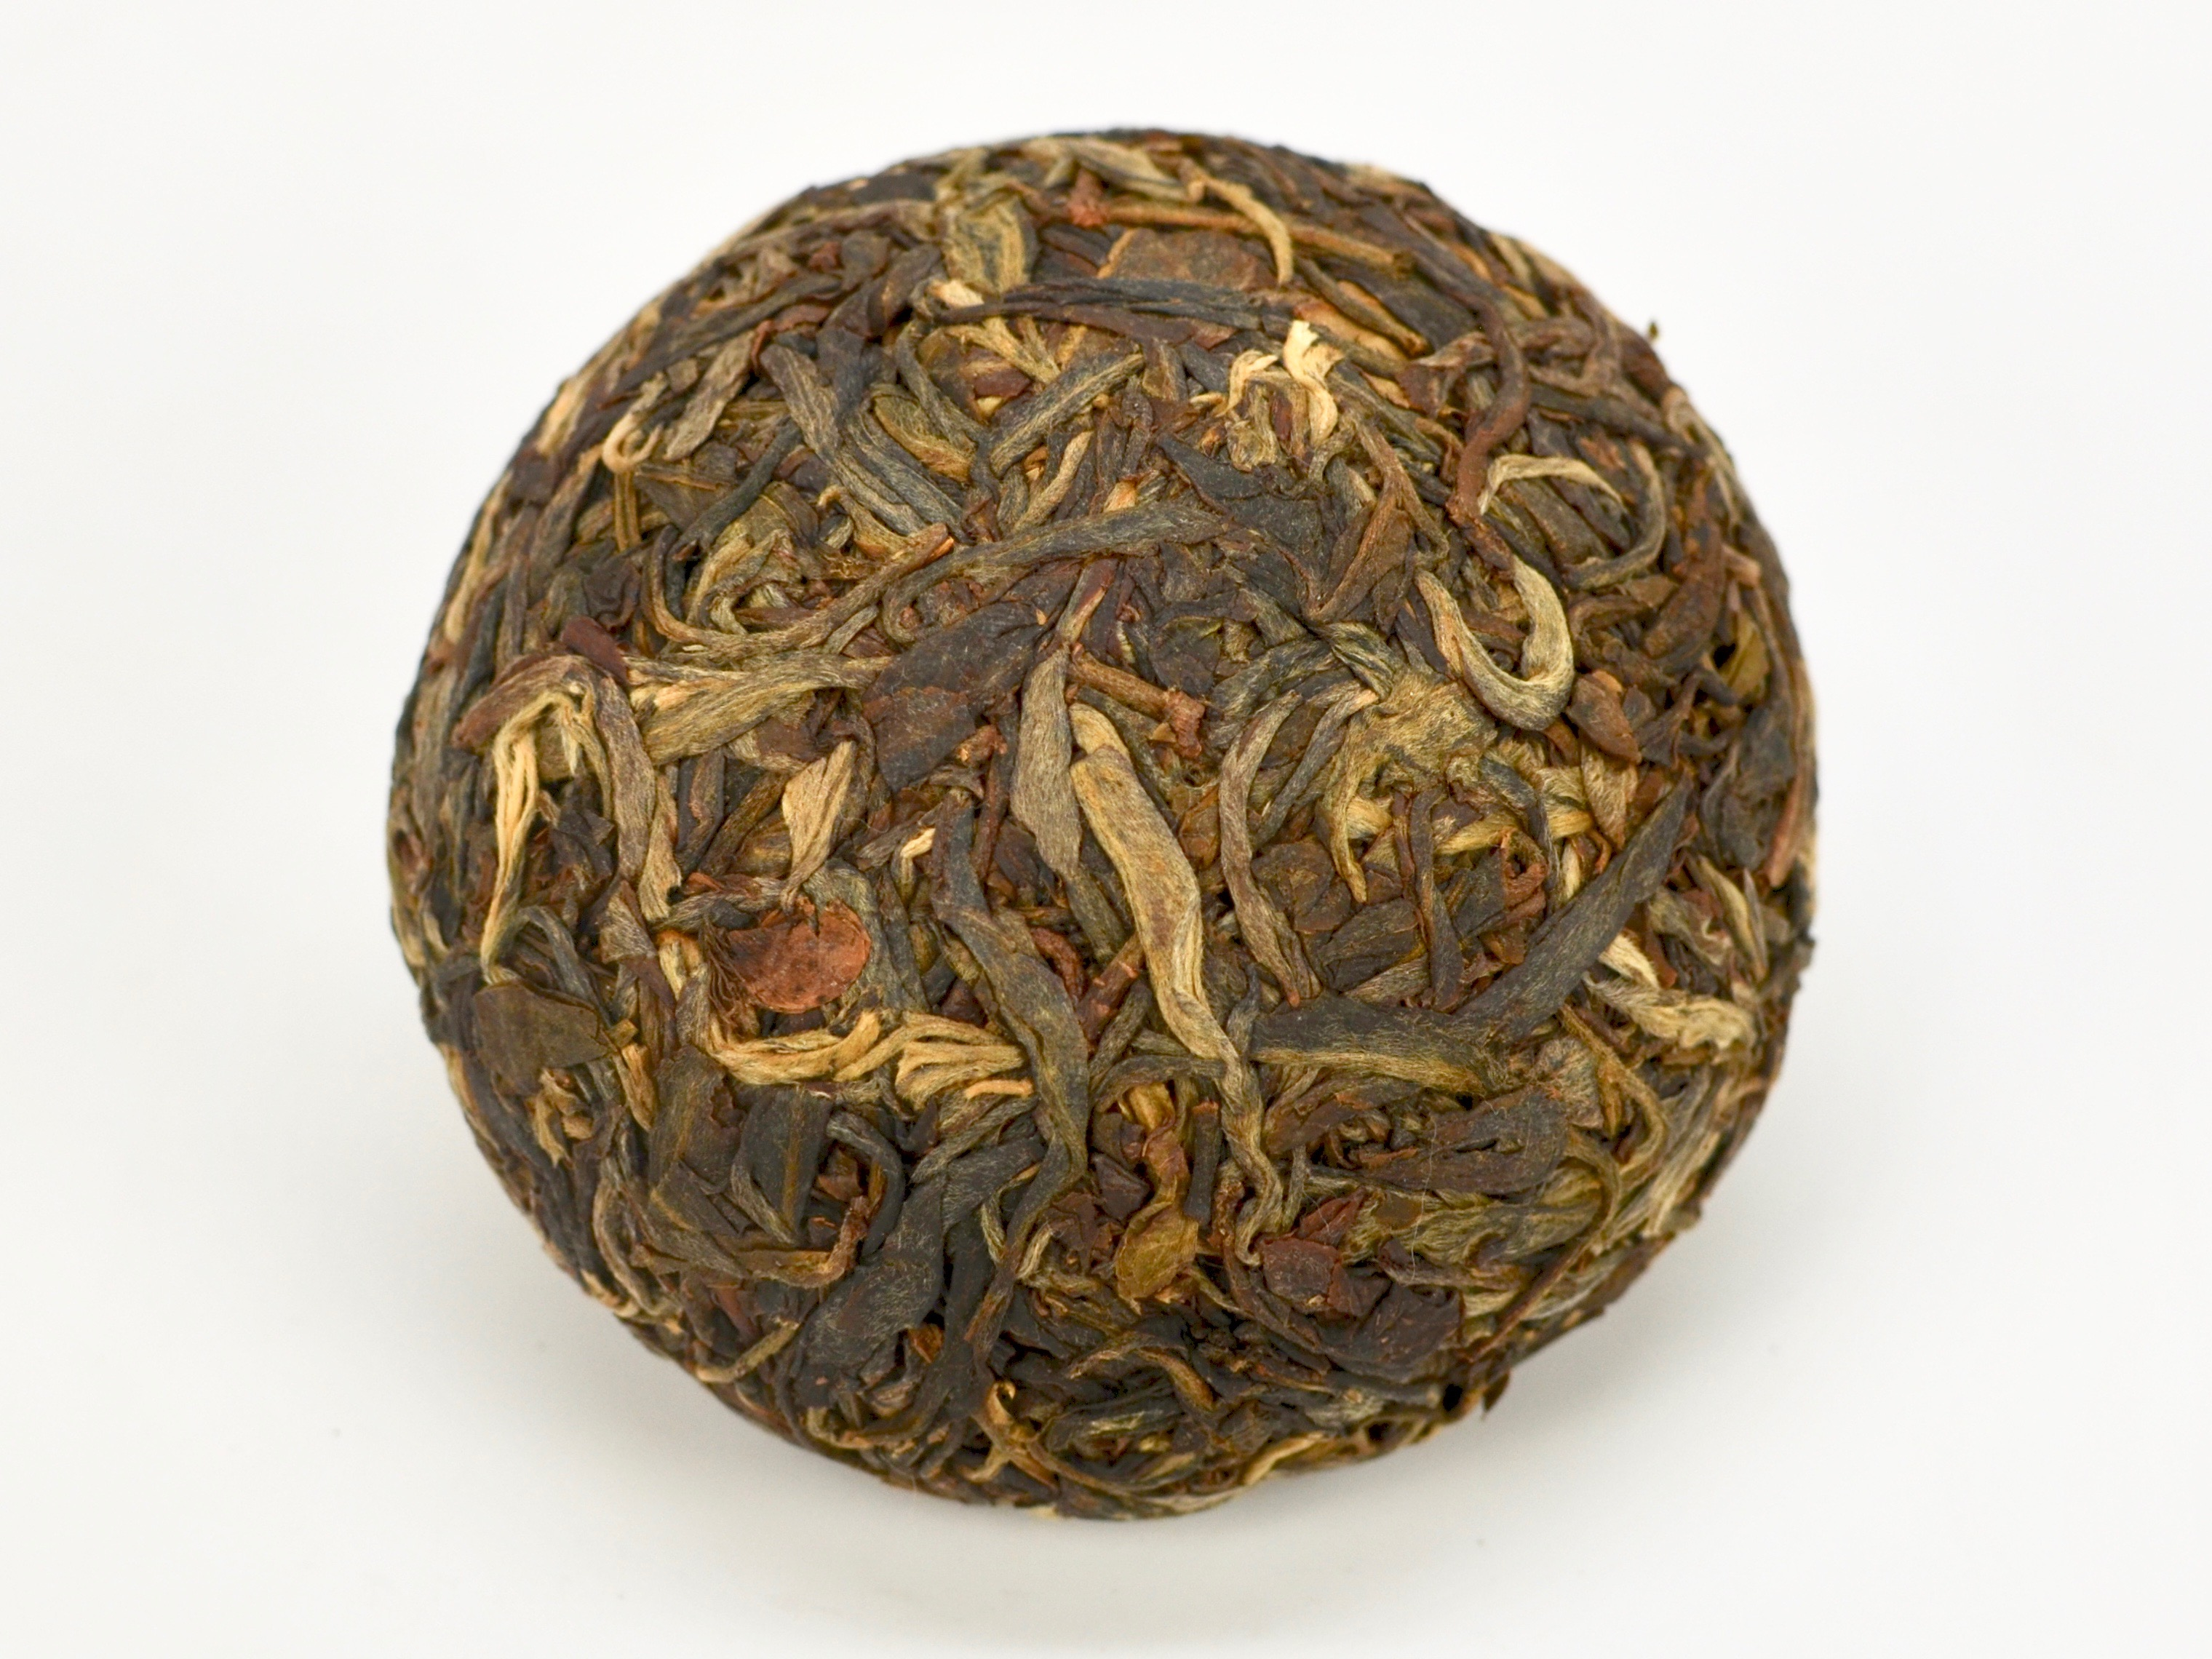 A round Little Sheng Tuocha 2014 Sheng Puer Cake unwrapped to reveal the compressed tea leaves in shades of dark green.